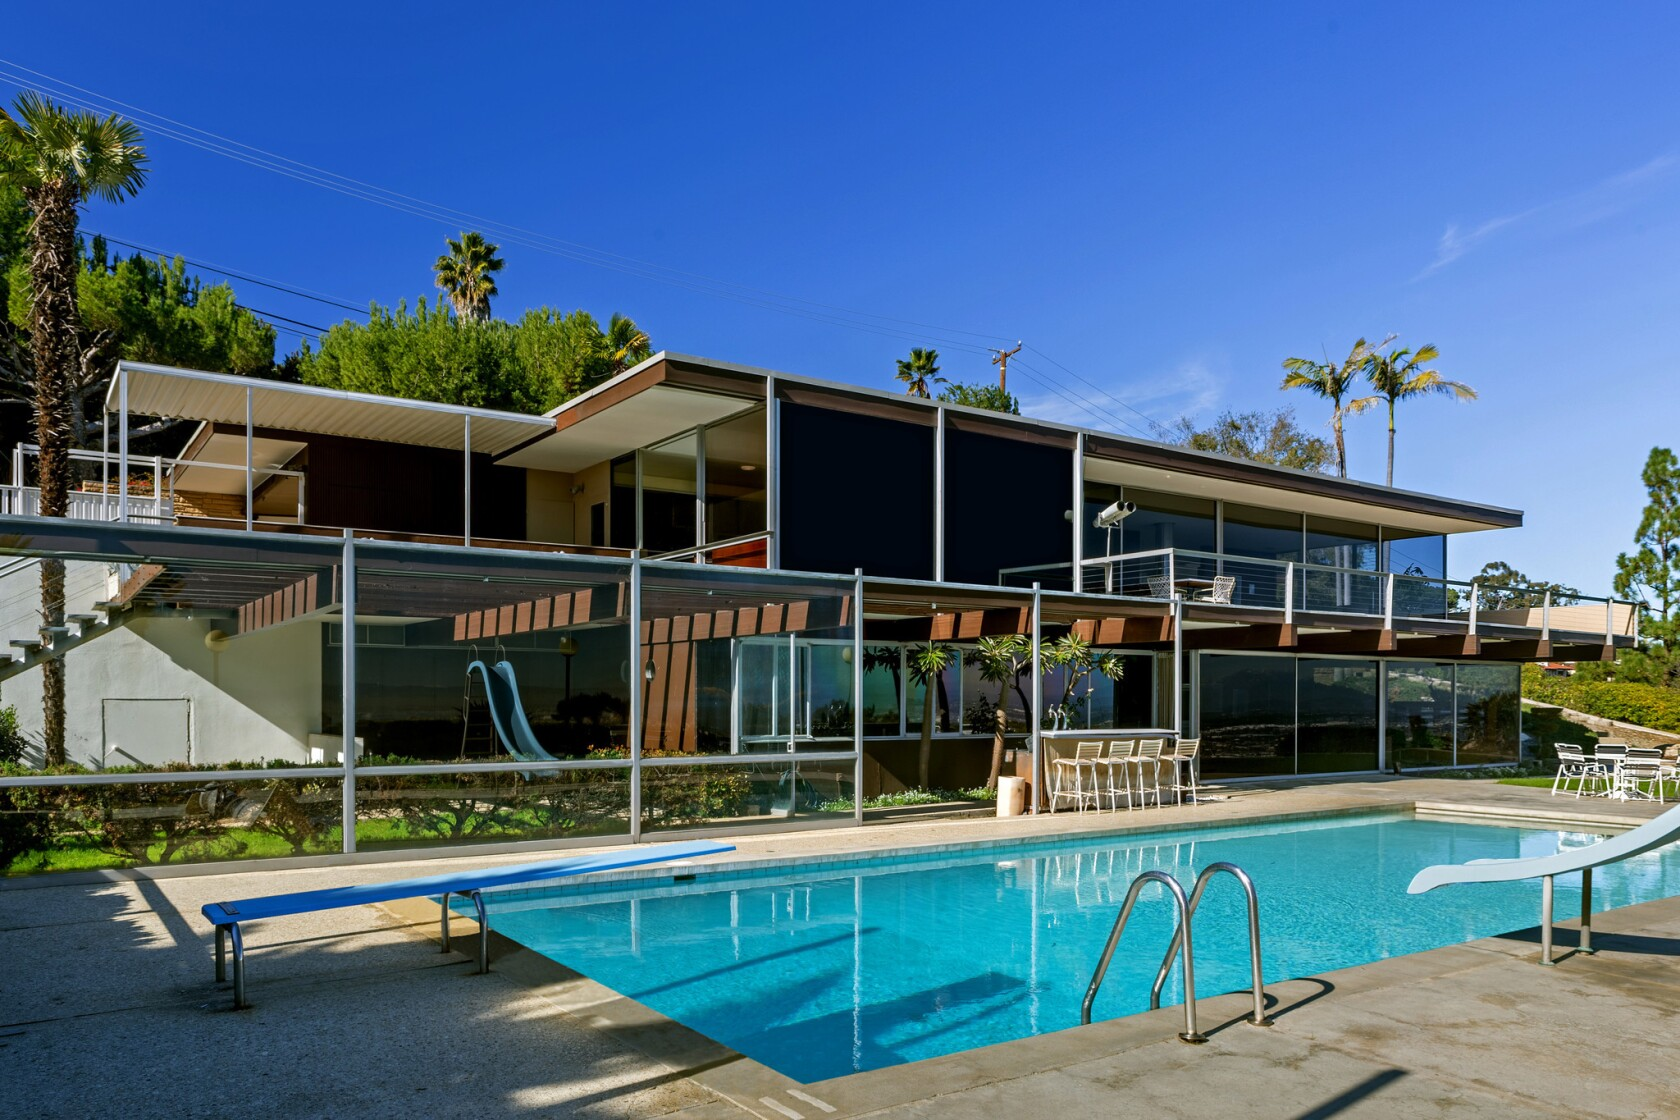 Home of the Week: A shipbuilder's Neutra in Rancho Palos Verdes